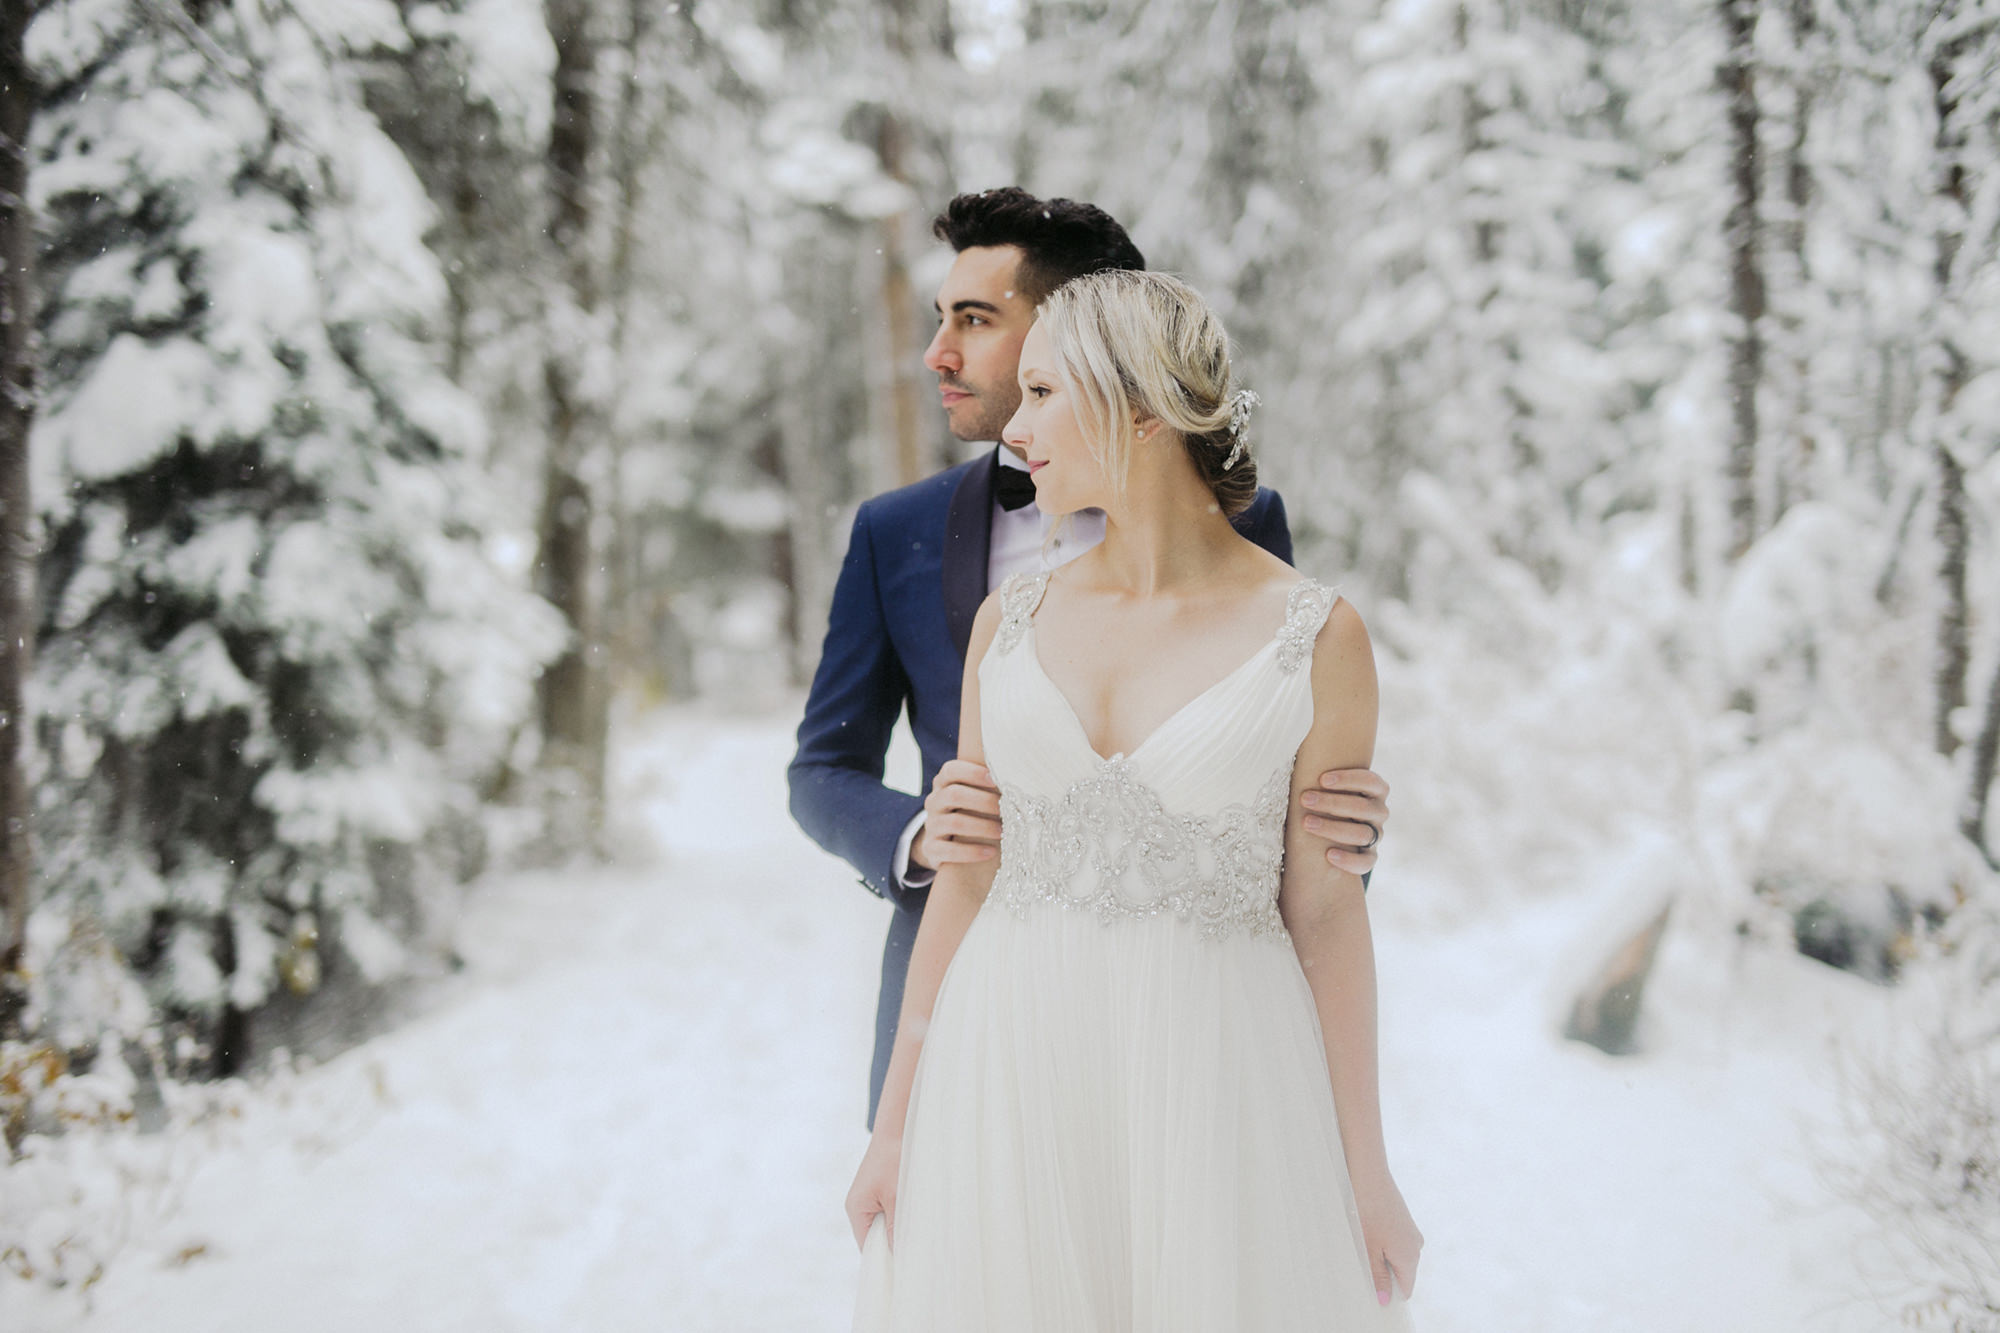 Lake Louise Winter Wedding -13.JPG